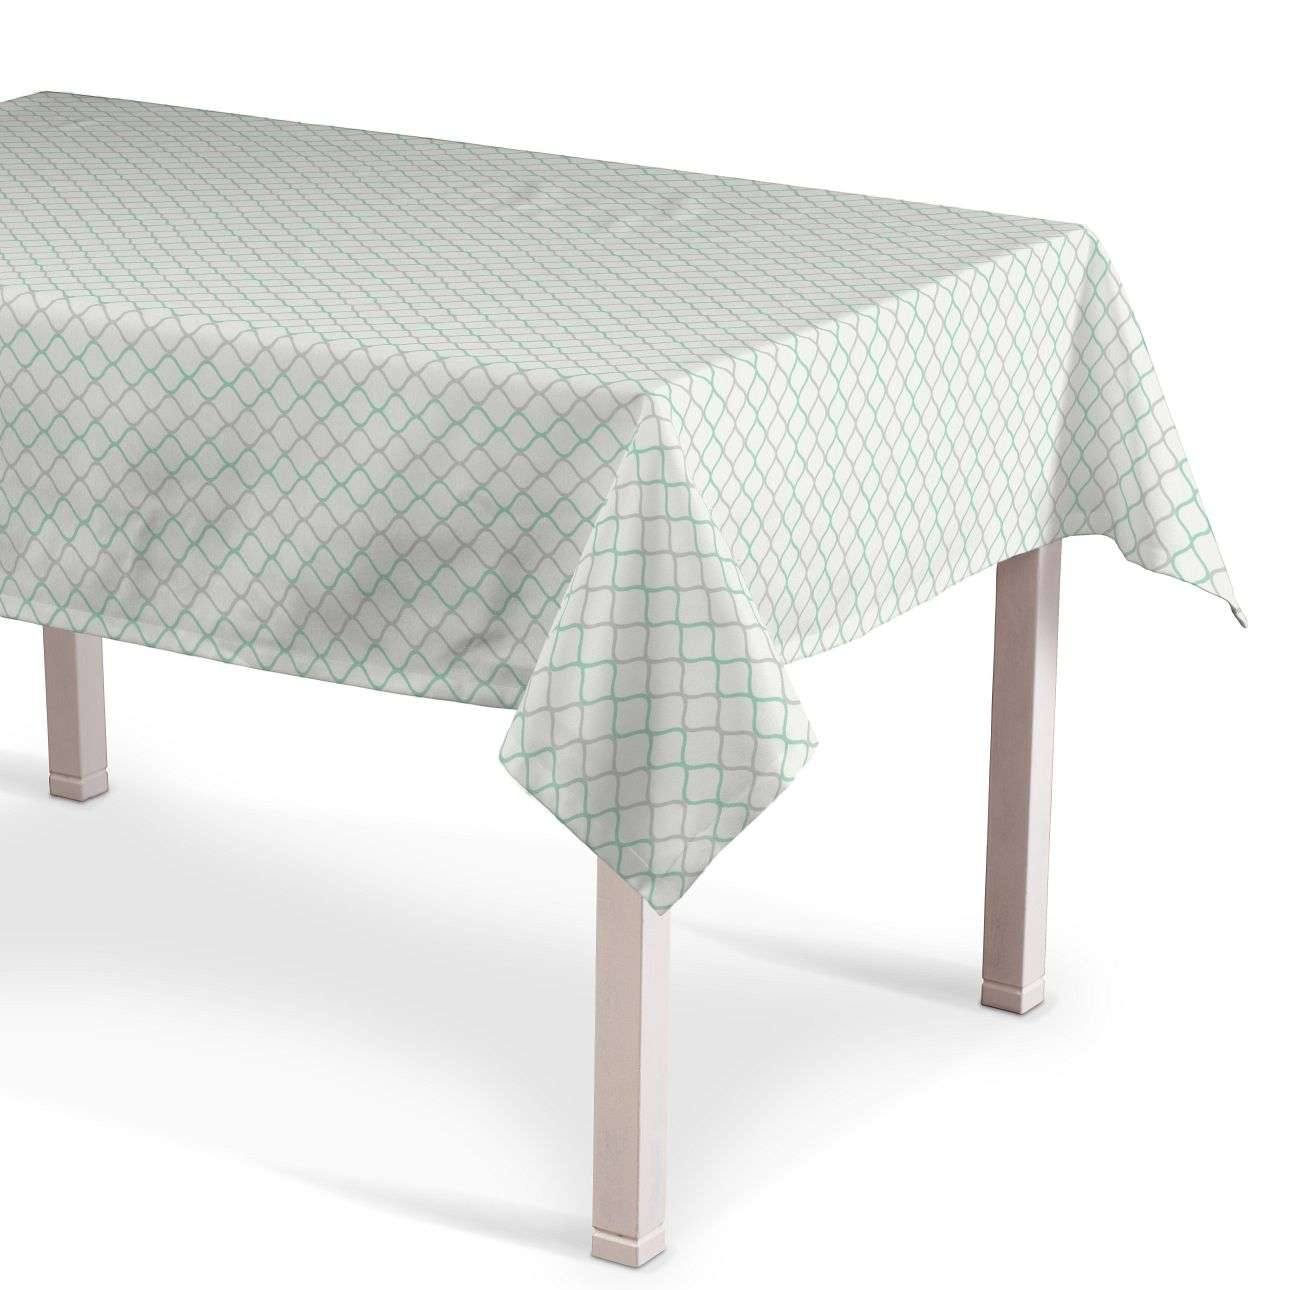 Rectangular tablecloth 130 × 130 cm (51 x51 inch) in collection Geometric, fabric: 141-47